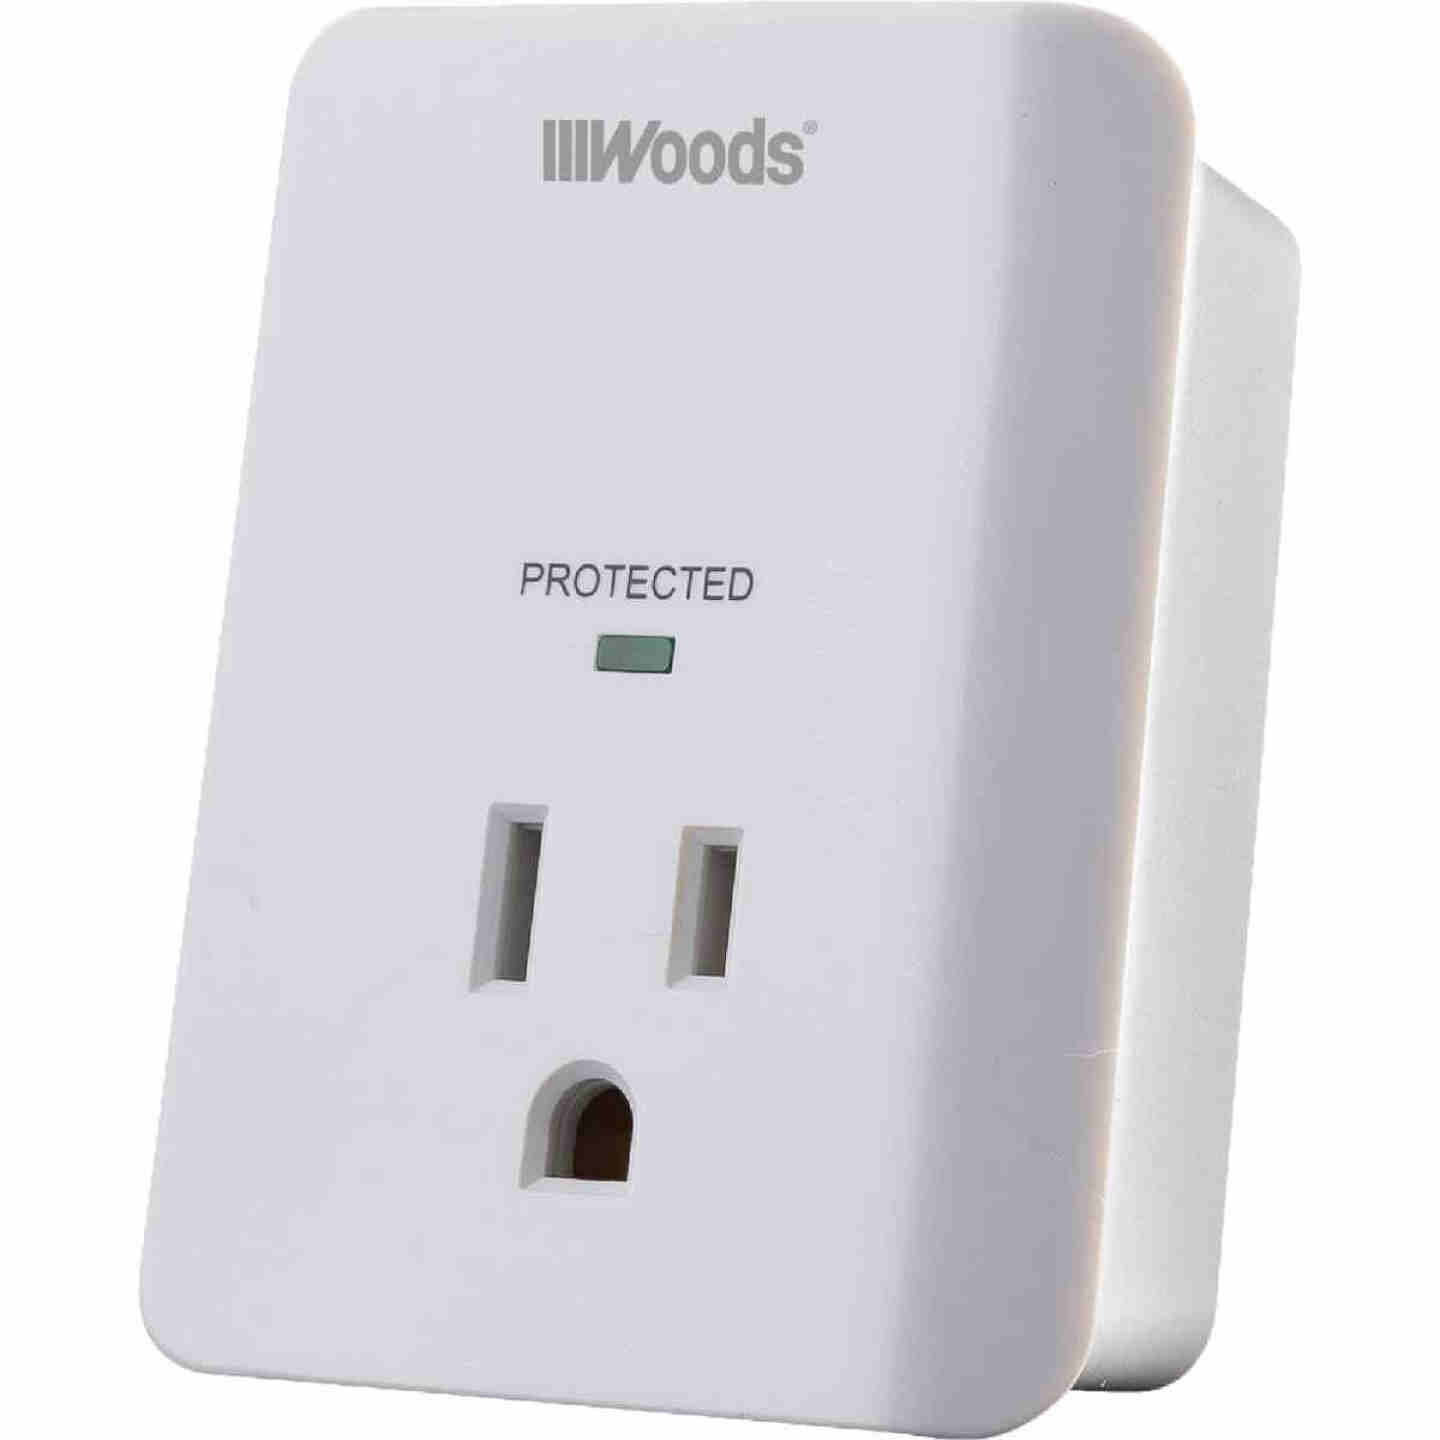 Woods 1-Outlet 15A White Surge Tap Appliance Alarm Image 1